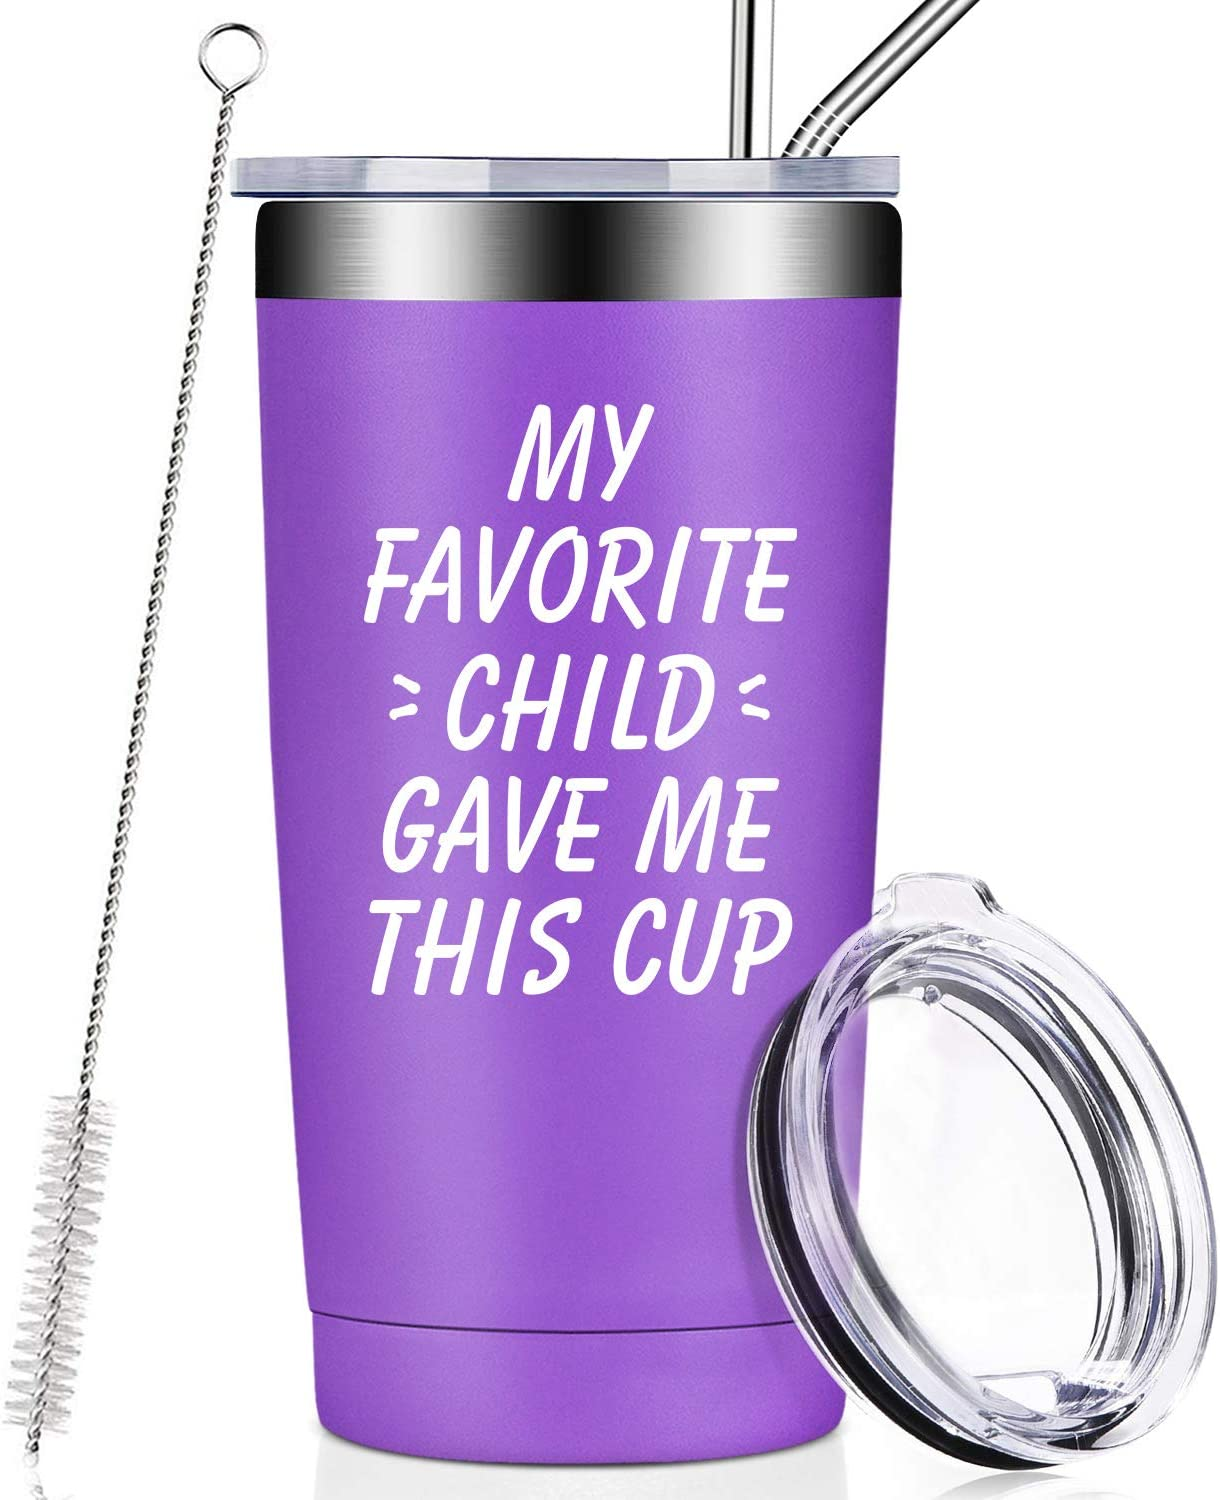 My Favorite Child Gave Me This Cup, Best Mom Birthday Gifts from Daughter, Son, Kids - Mother's Day, Father's Day, Christmas Funny Gifts Idea for Dad, Mama, Grandma, Women, Men, Wine Tumbler